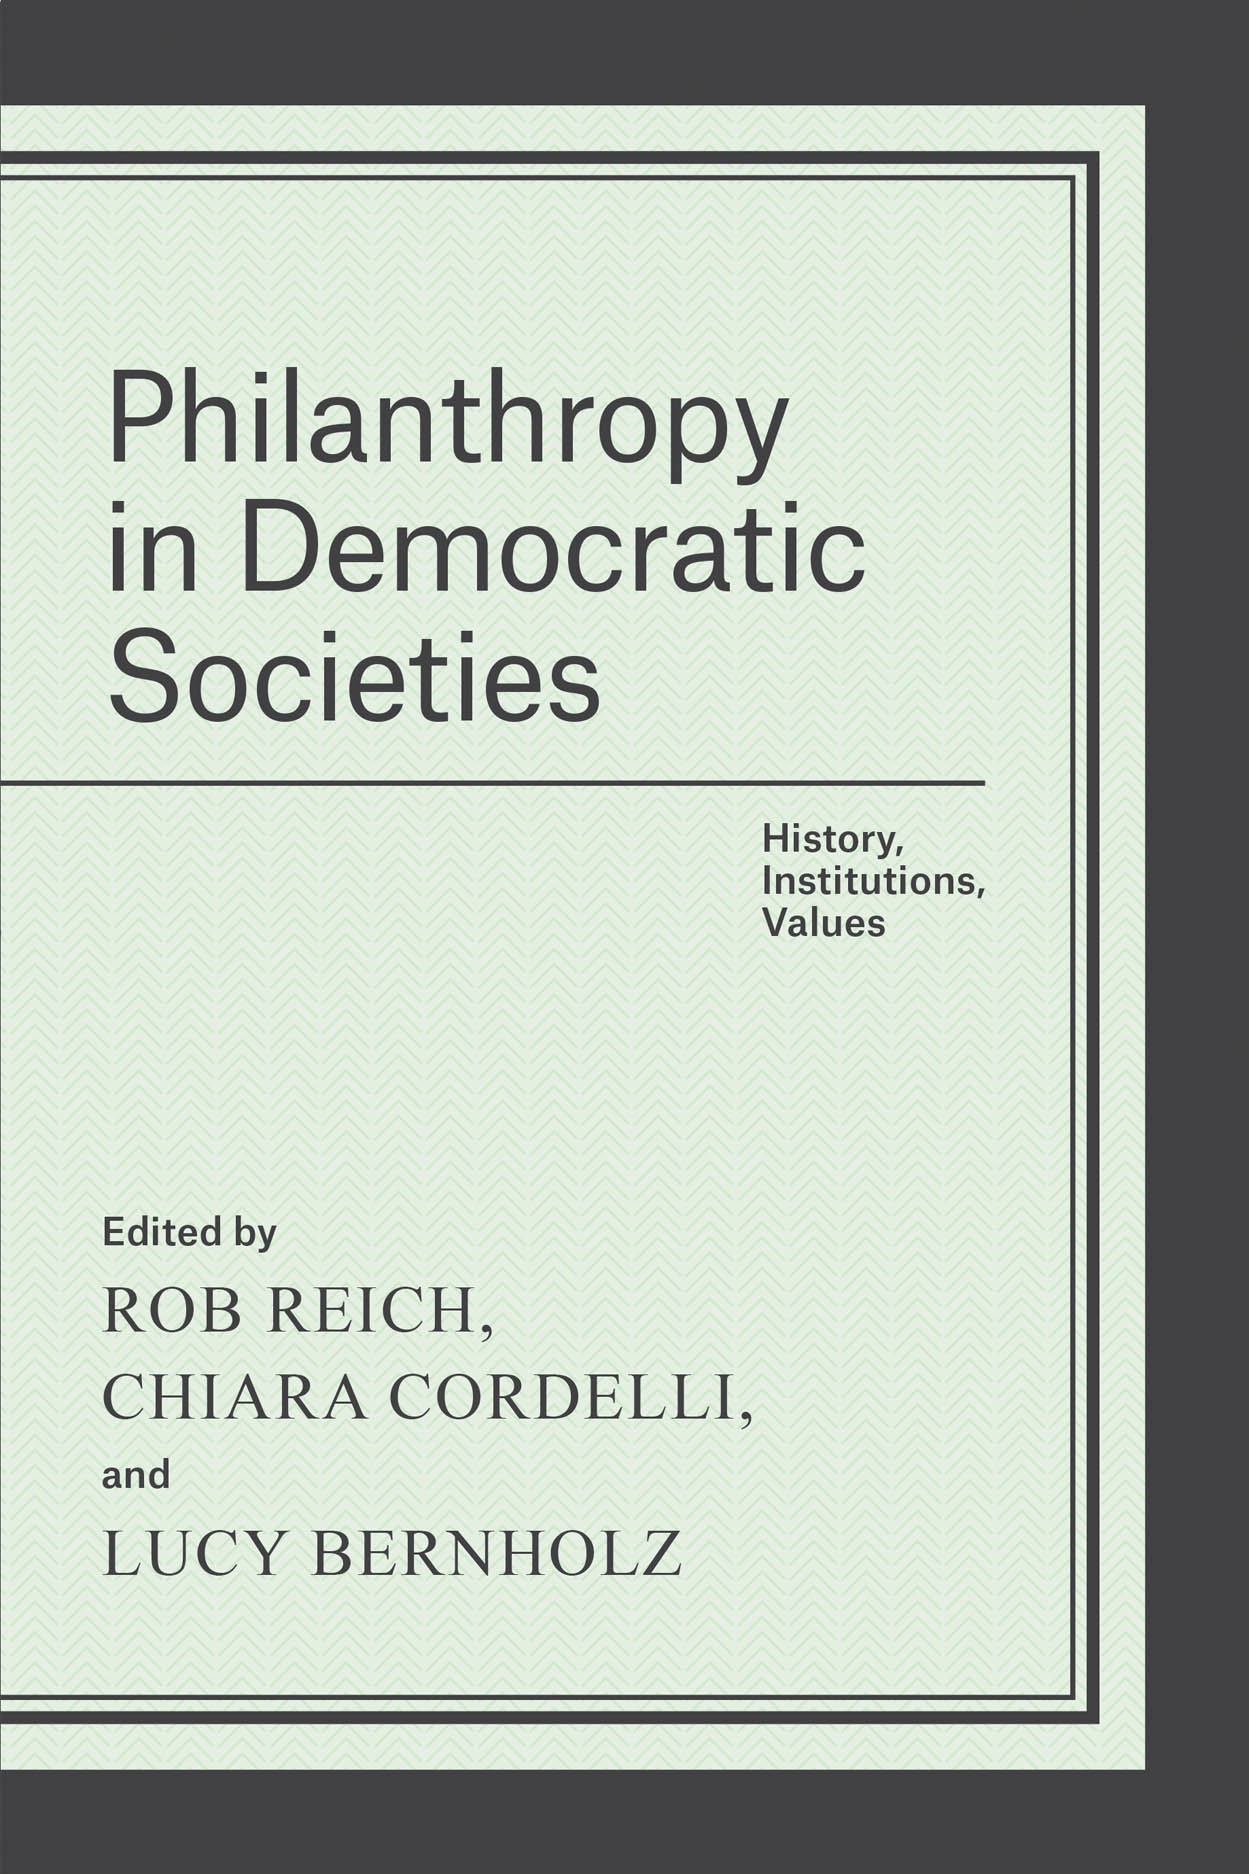 Philanthropy in Democratic Societies: History, Institutions, Values